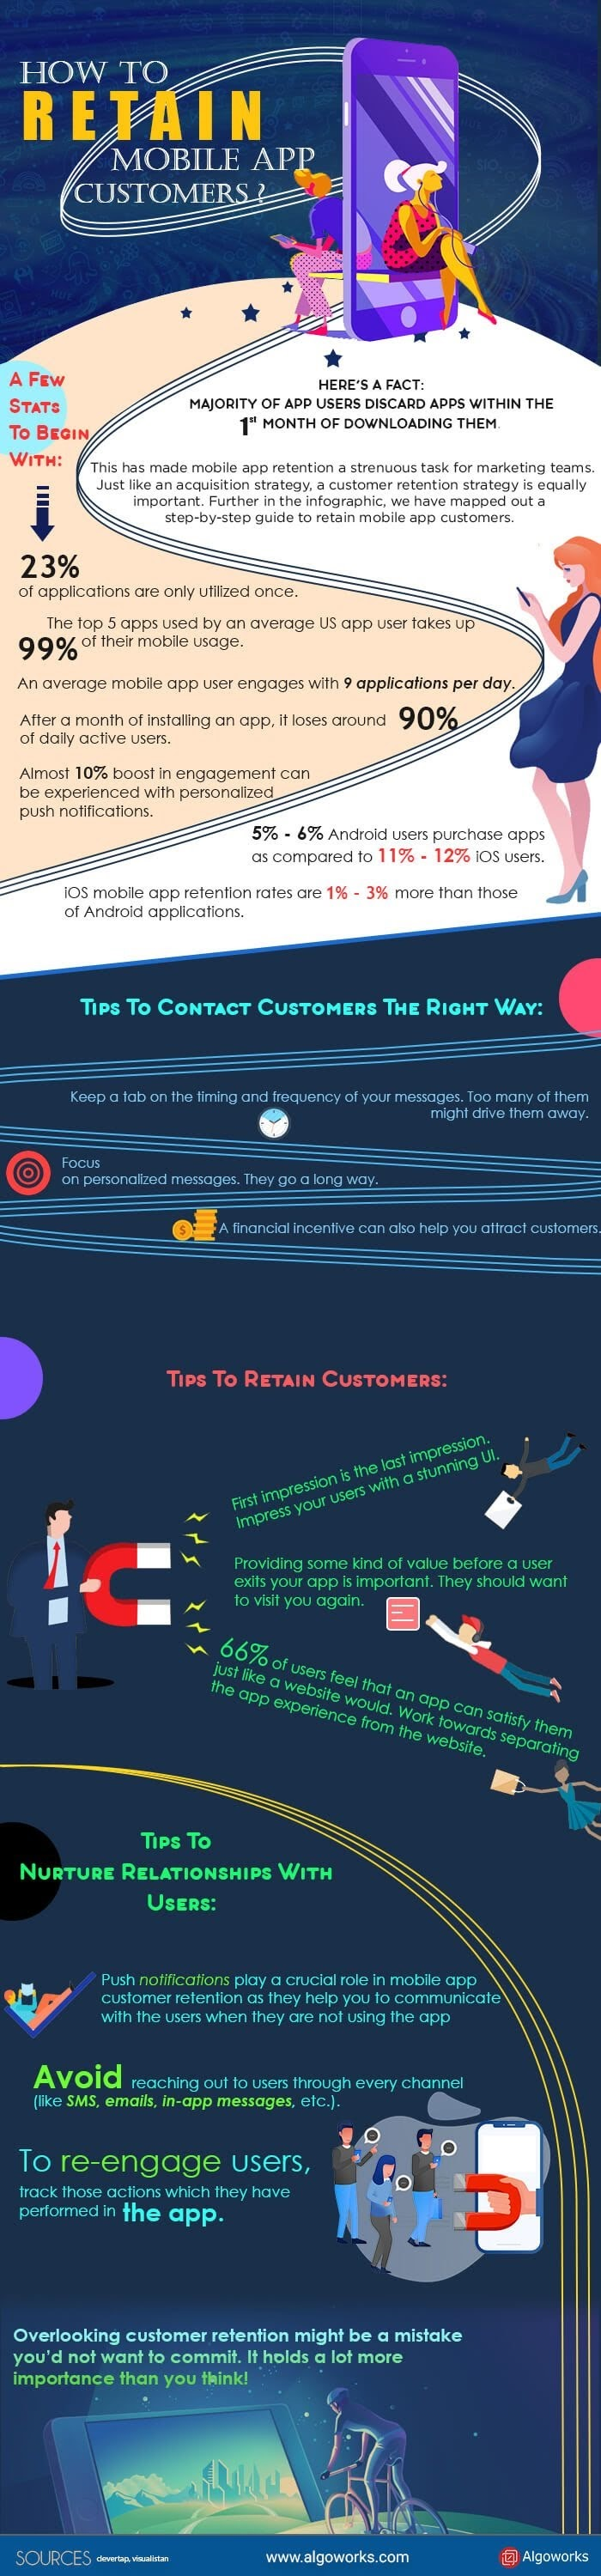 How To Retain Mobile App Customers #infographic